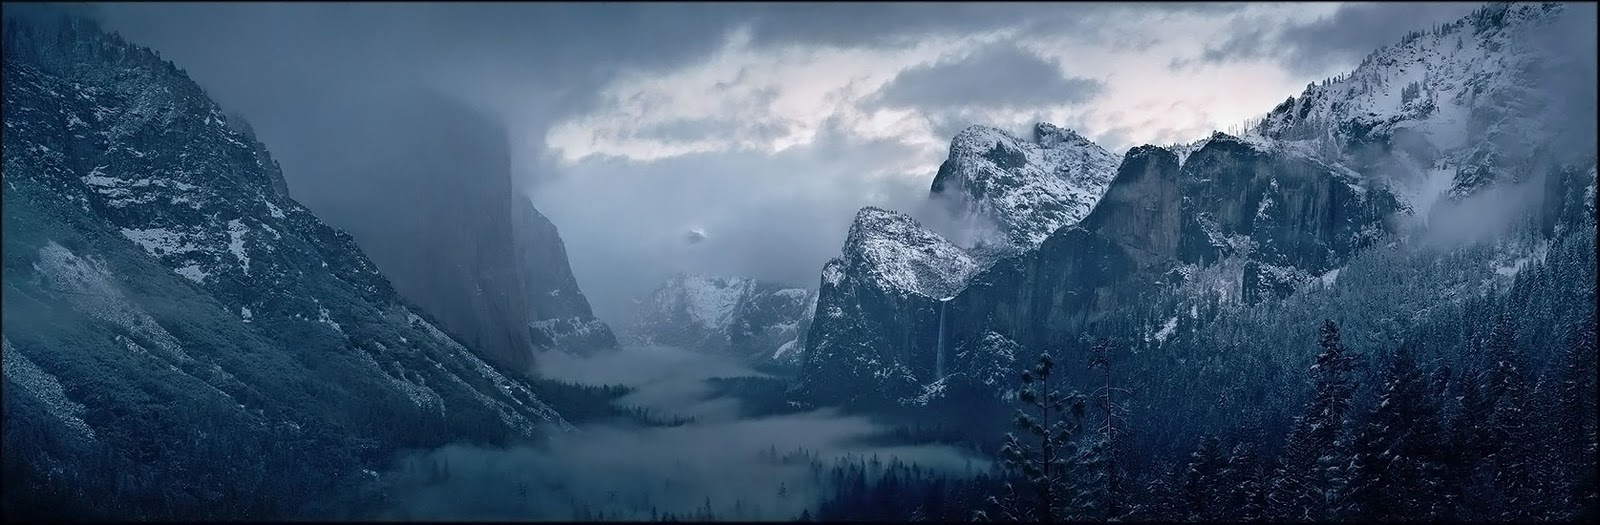 Yosemite_Winter_Storm_detail.jpg